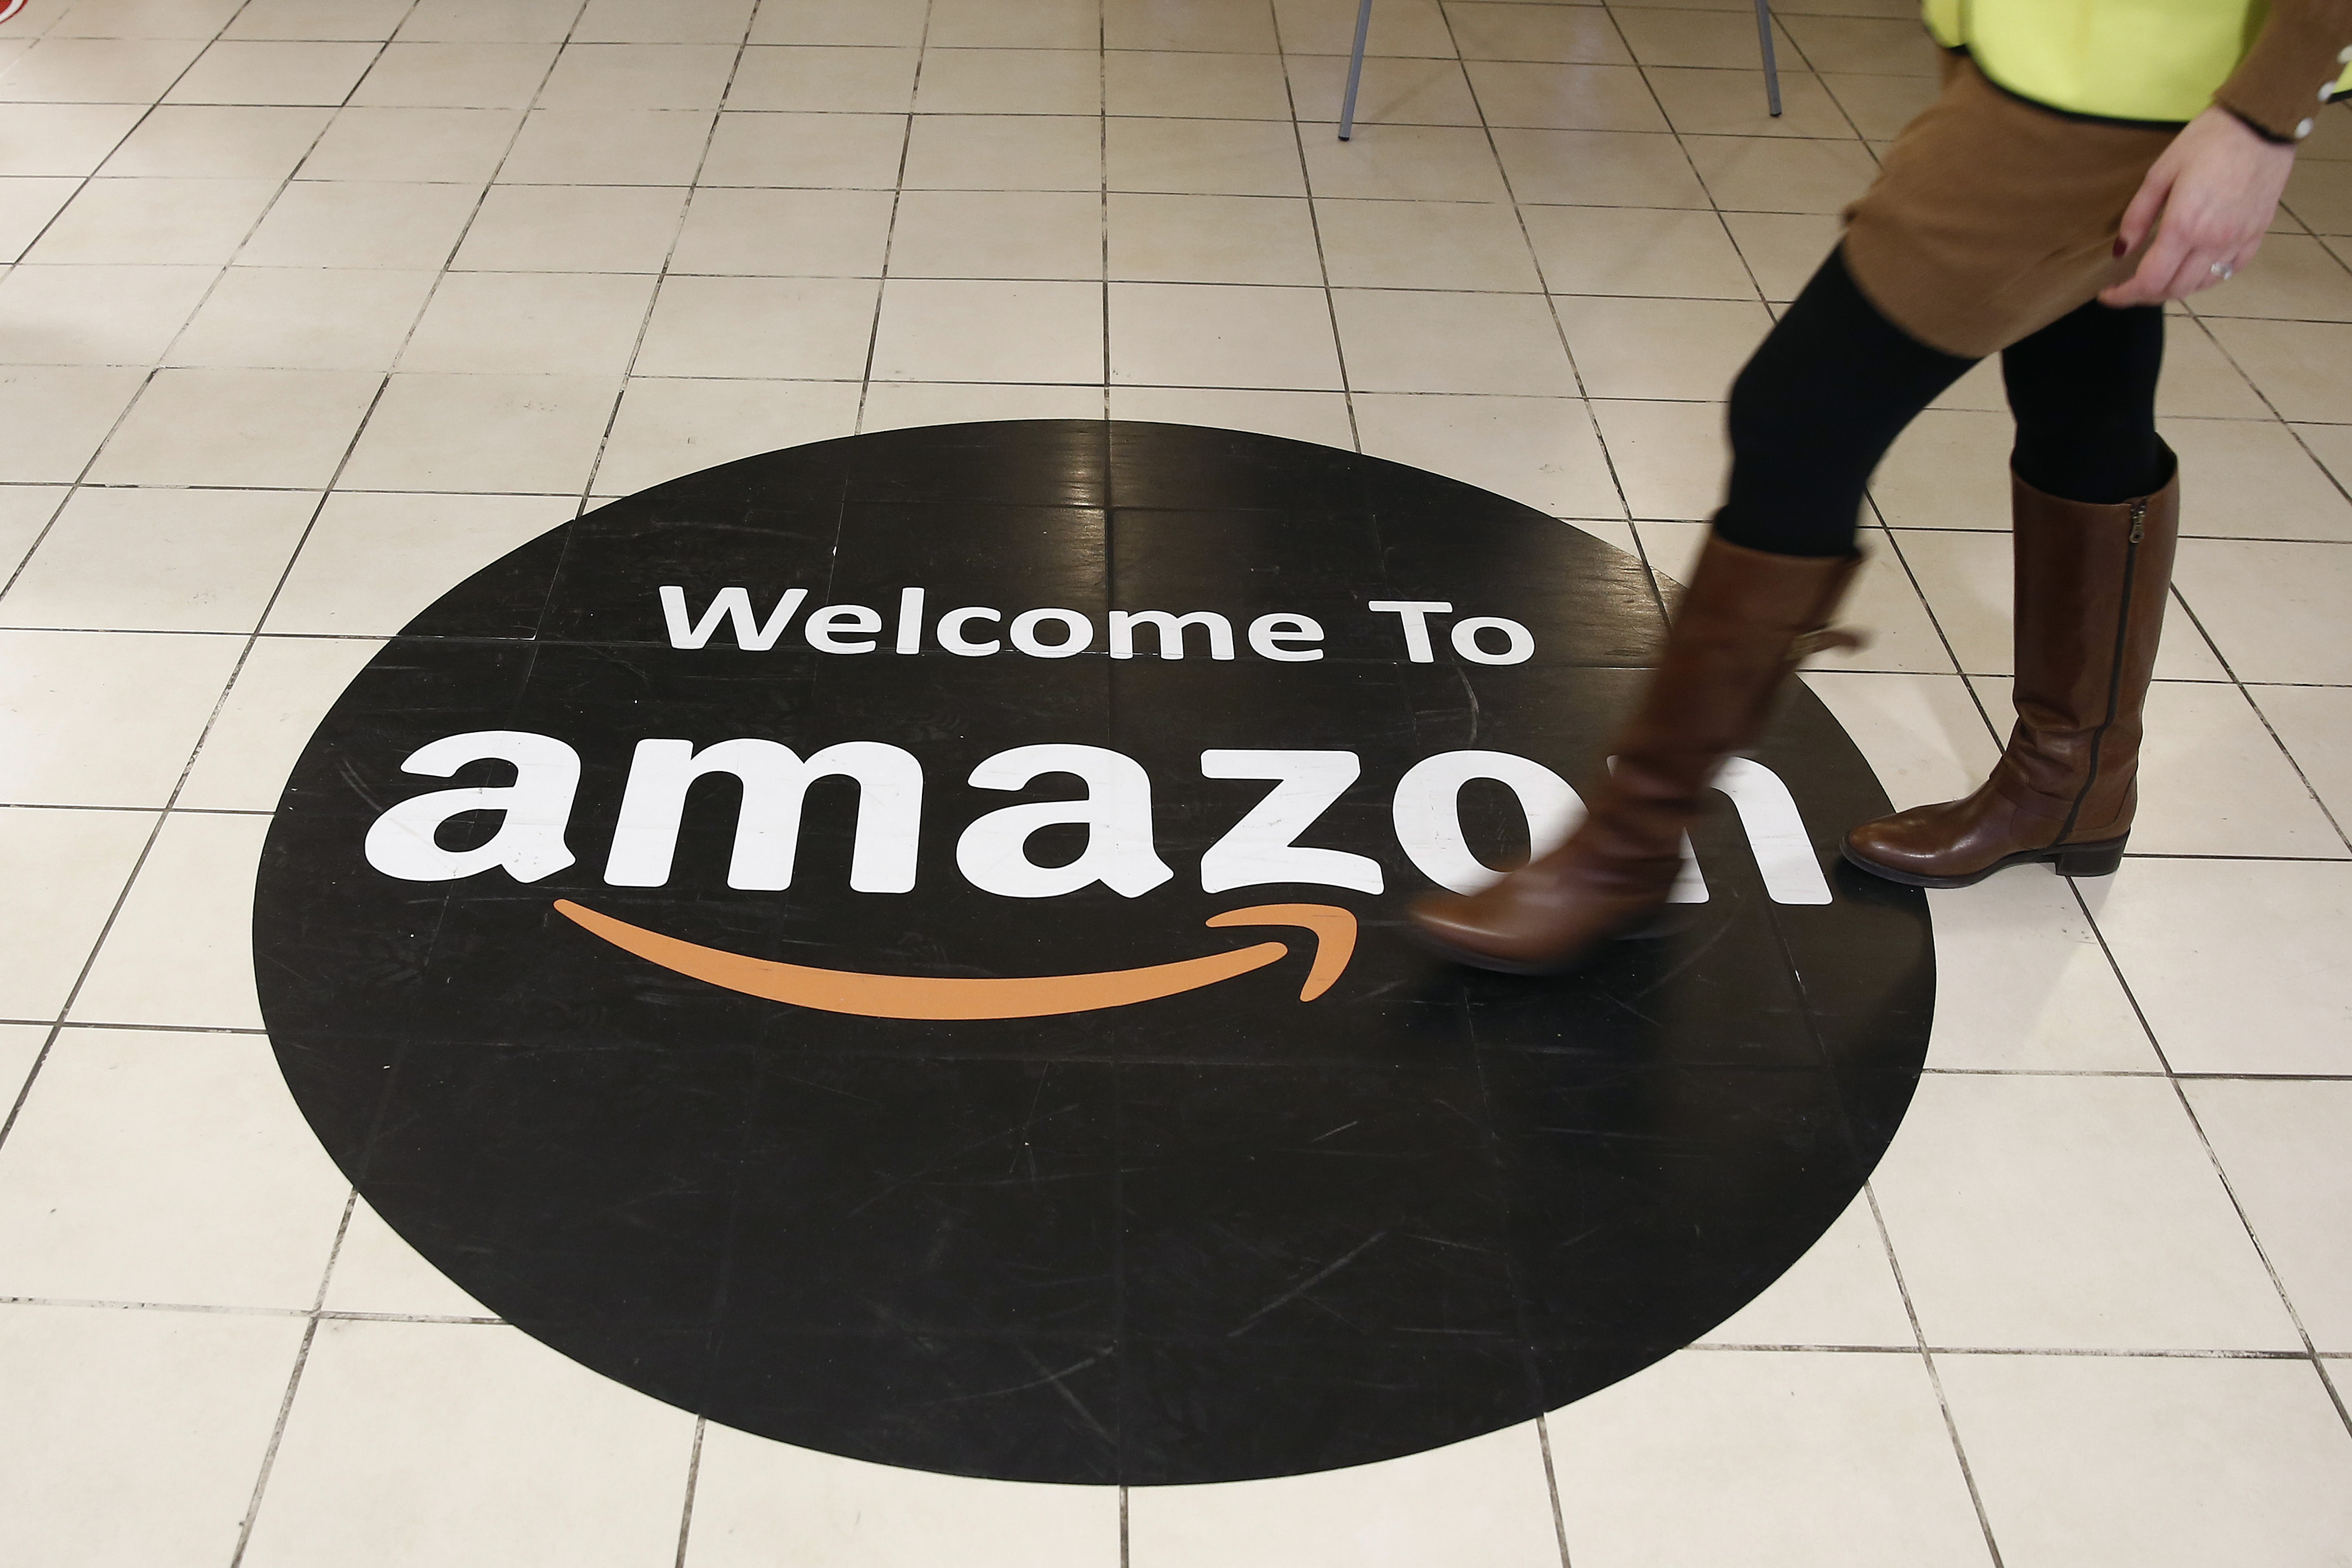 An employee walks over a logo on the floor of Amazon.com Inc.'s fulfillment centers in Rugeley, U.K. on Dec. 2, 2013.